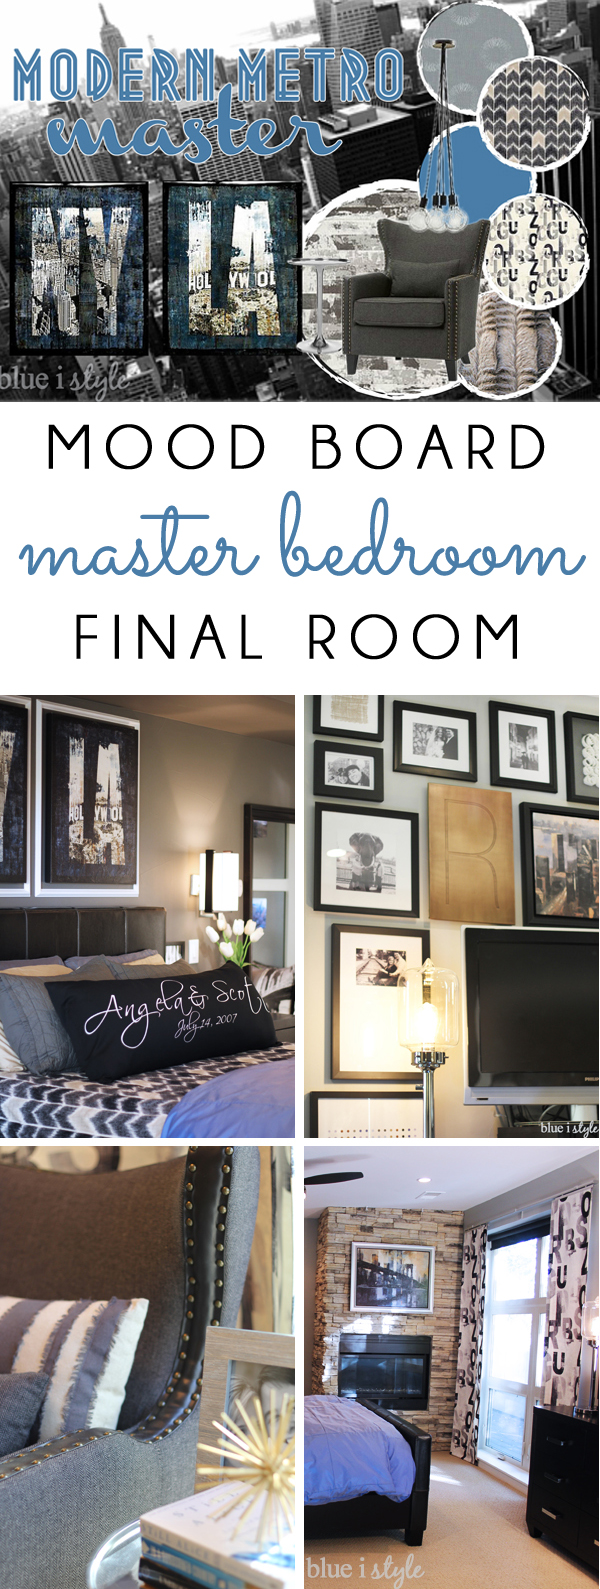 Modern Metro Master Bedroom mood board and photos